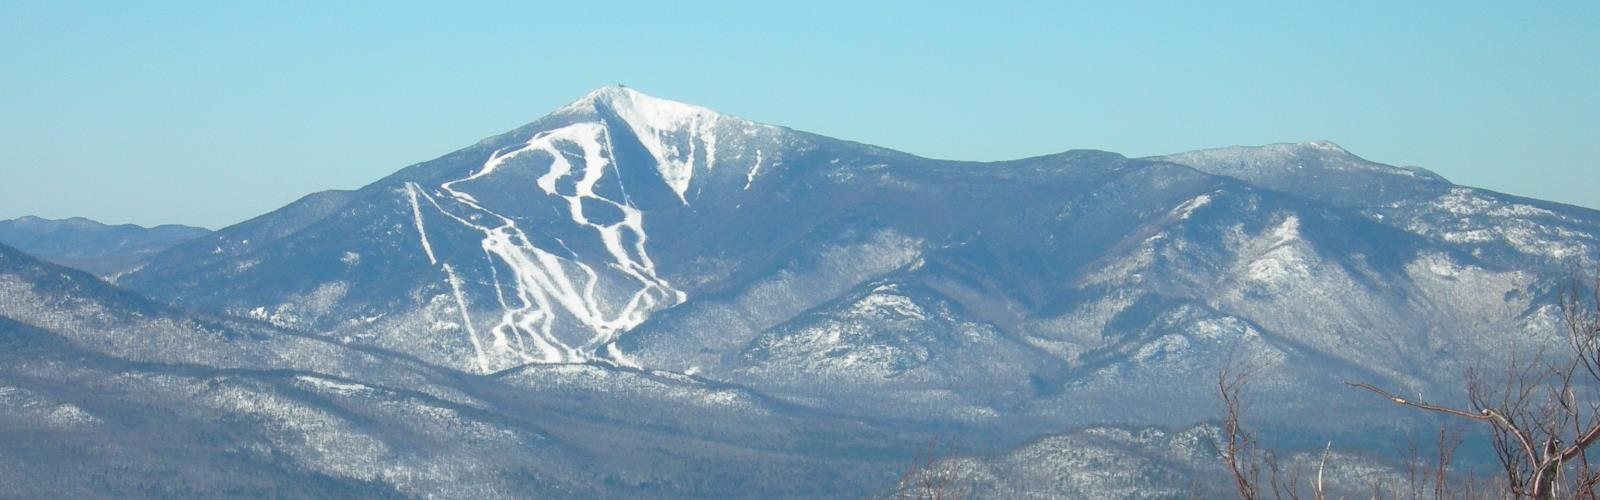 Whiteface Mountain, New York - Randonnée Pedestre